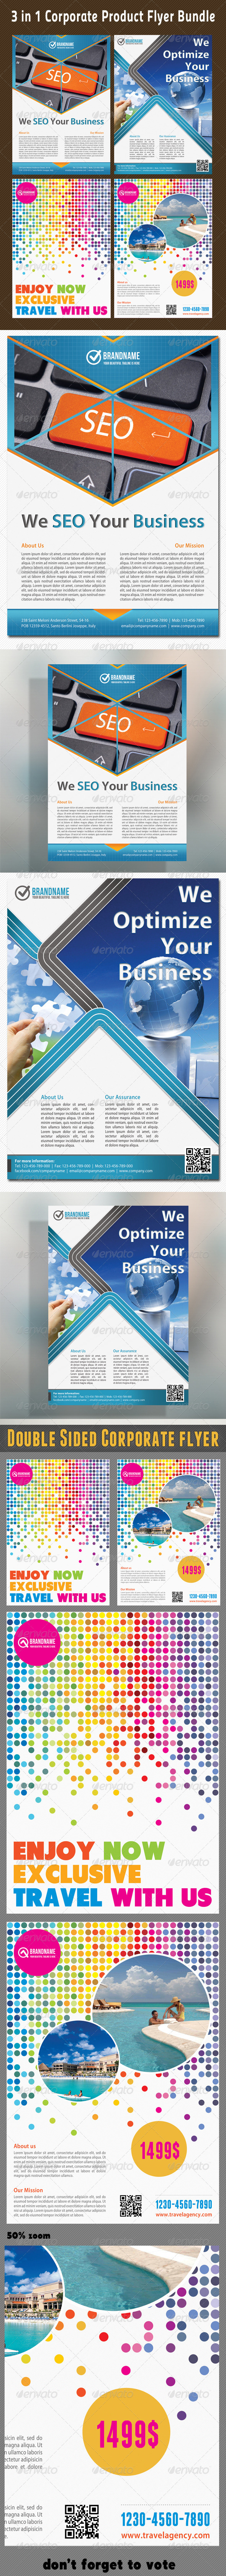 GraphicRiver 3 in 1 Corporate Flyers Bundle 02 6588140